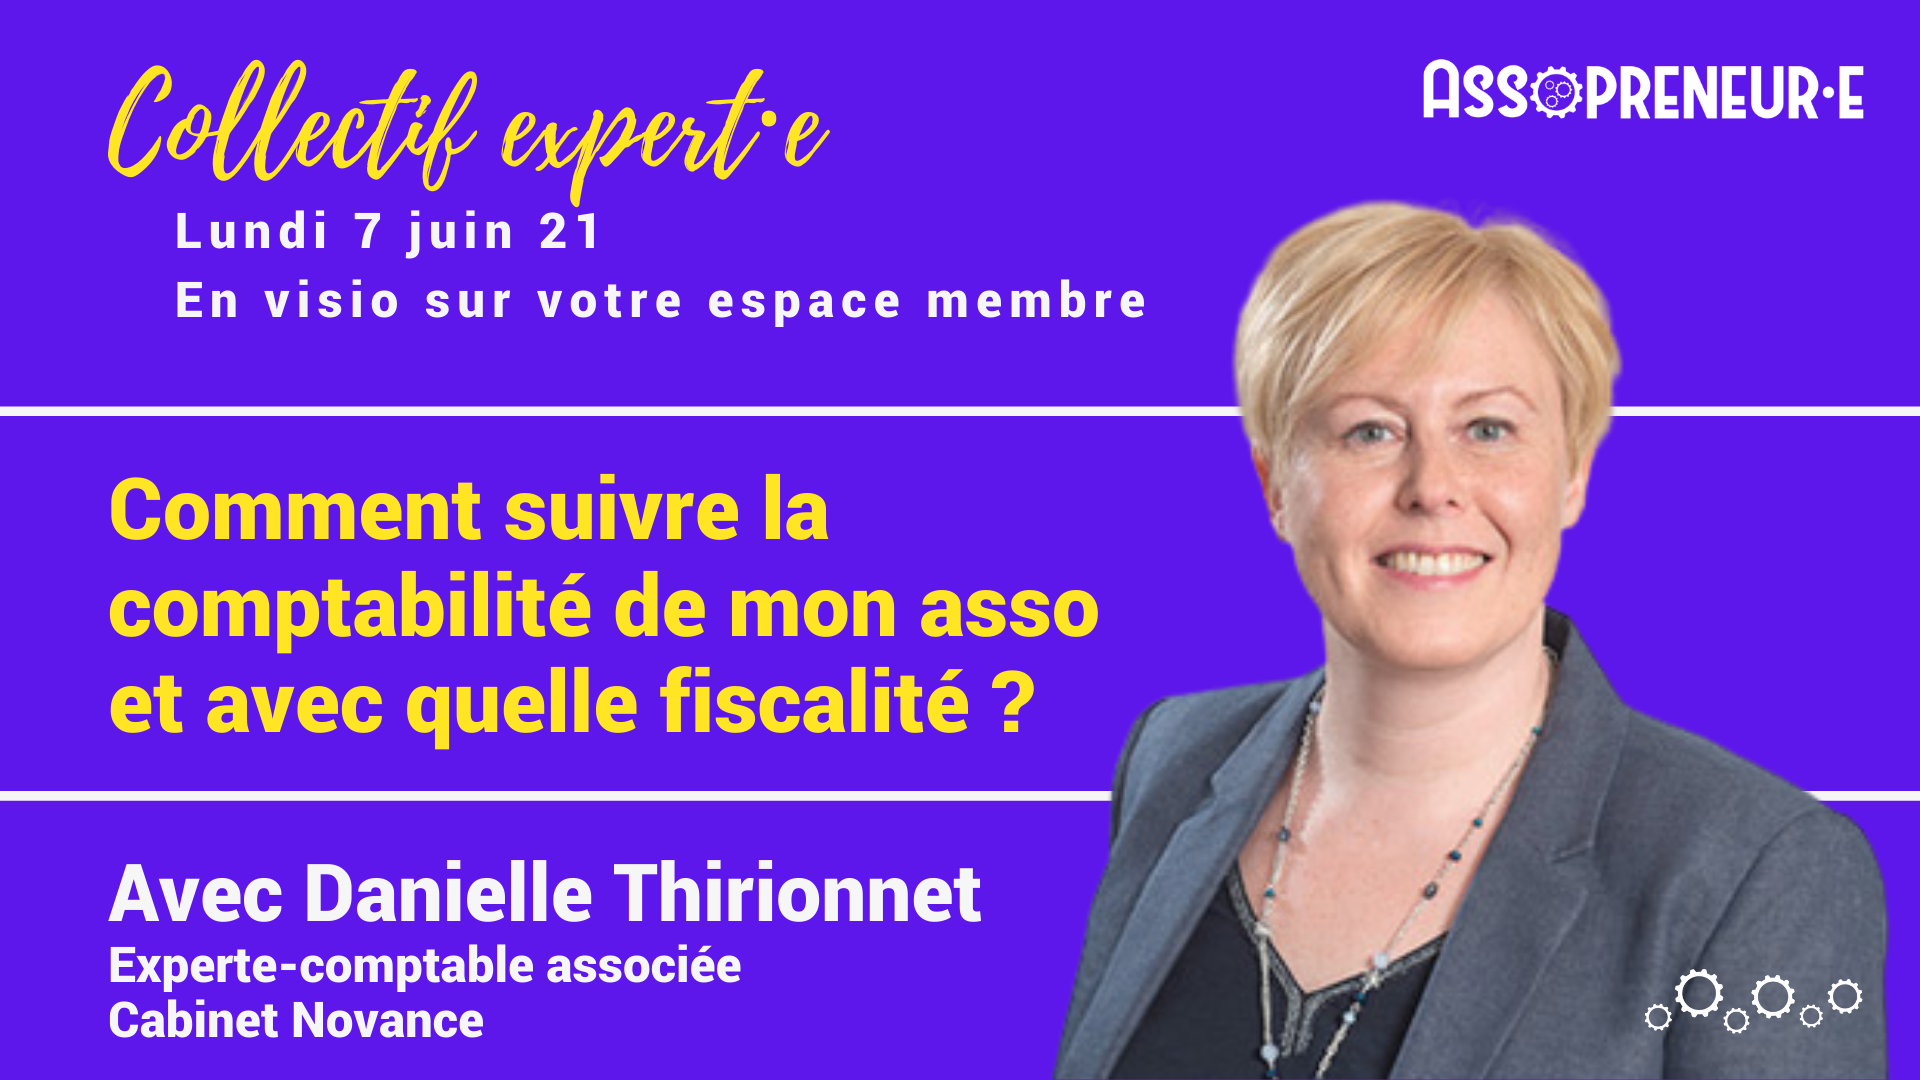 070621 Collectif expert Danielle Thirionnet Assopreneur